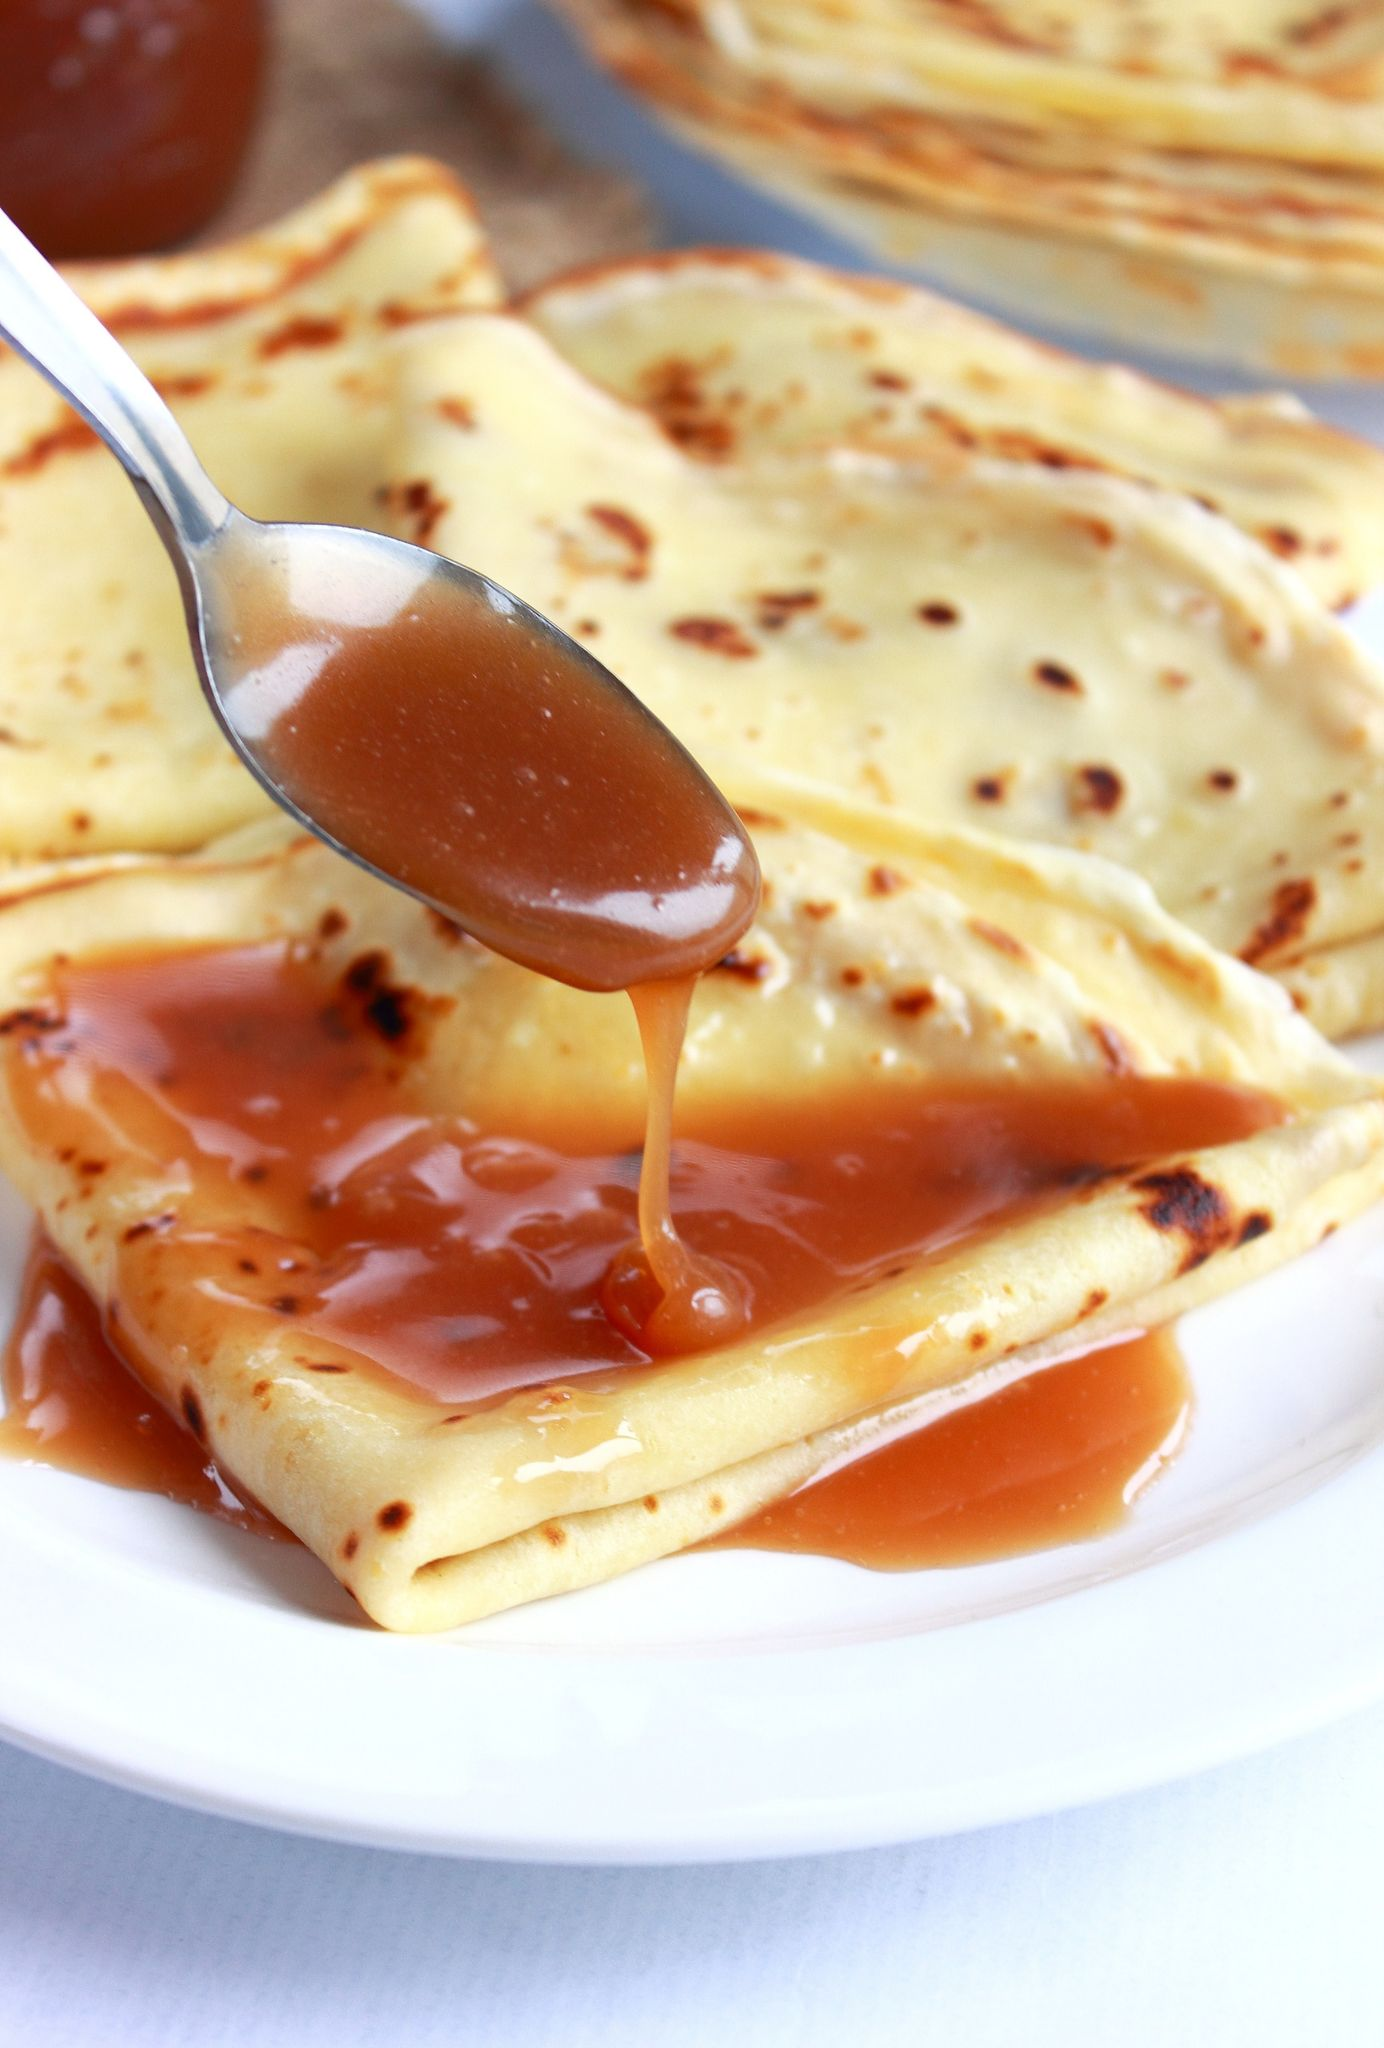 Crepes With Caramel Sauce Recipes — Dishmaps